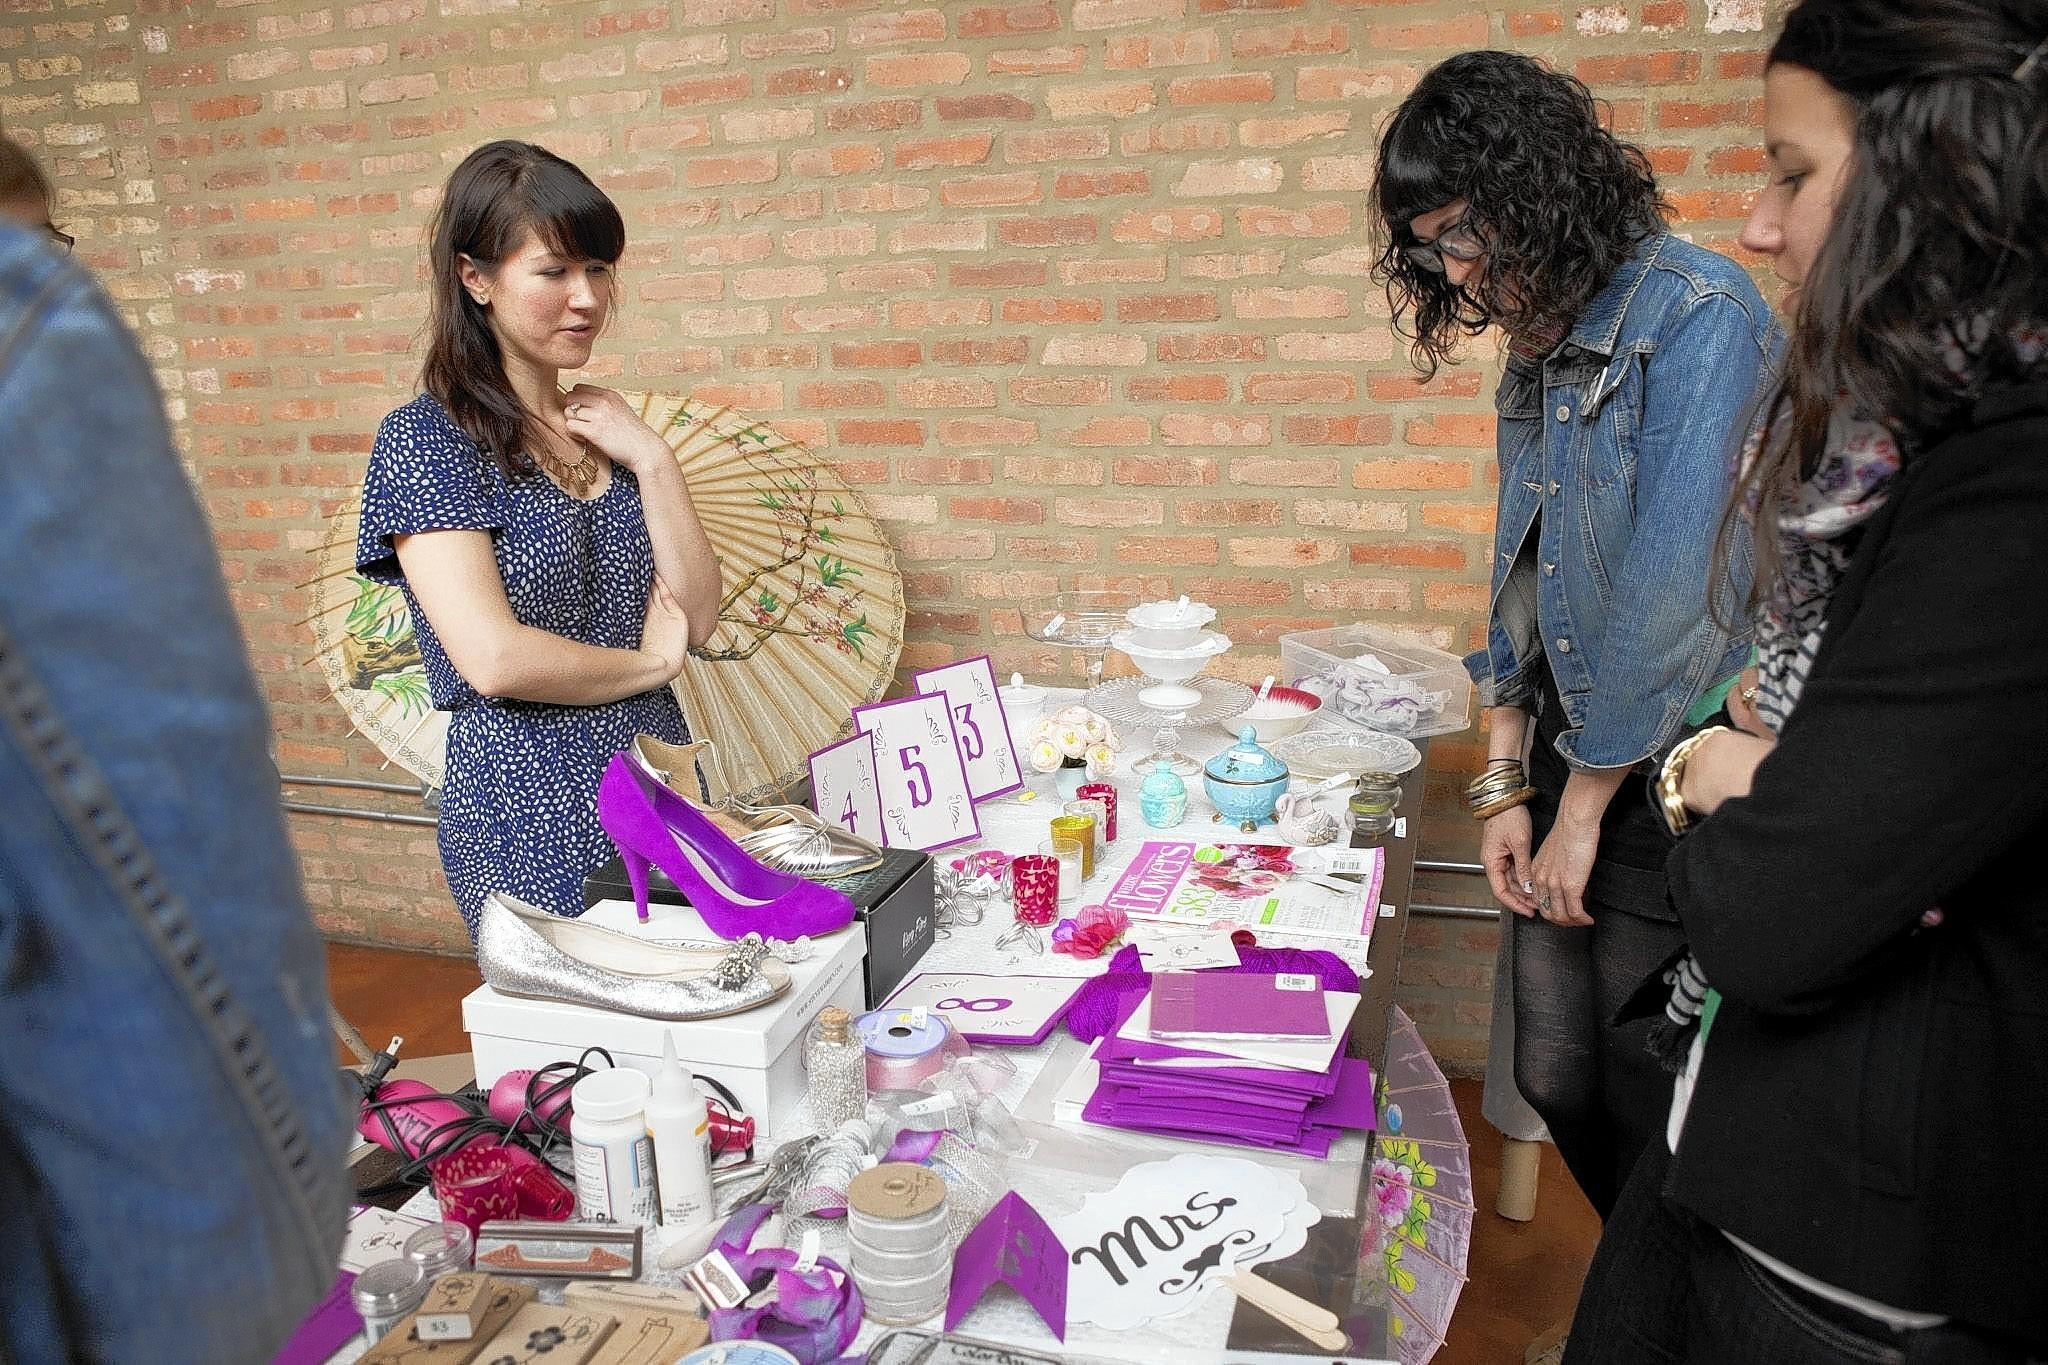 ct-xx-great-wedding-recyclery-1-jpg-20140411.jpg